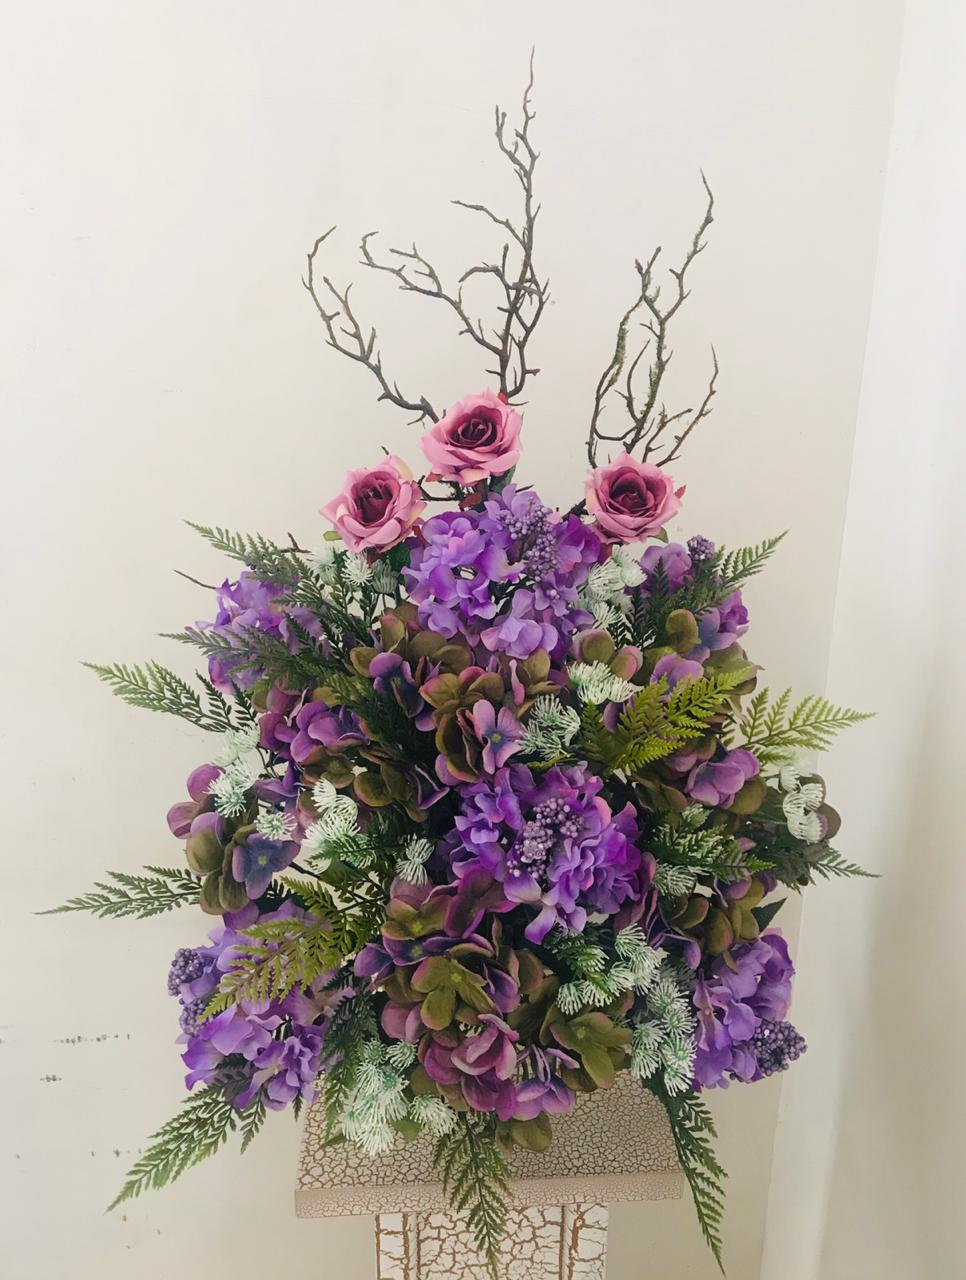 Artificial Floral Arrangement (h:76cm w:54cm)